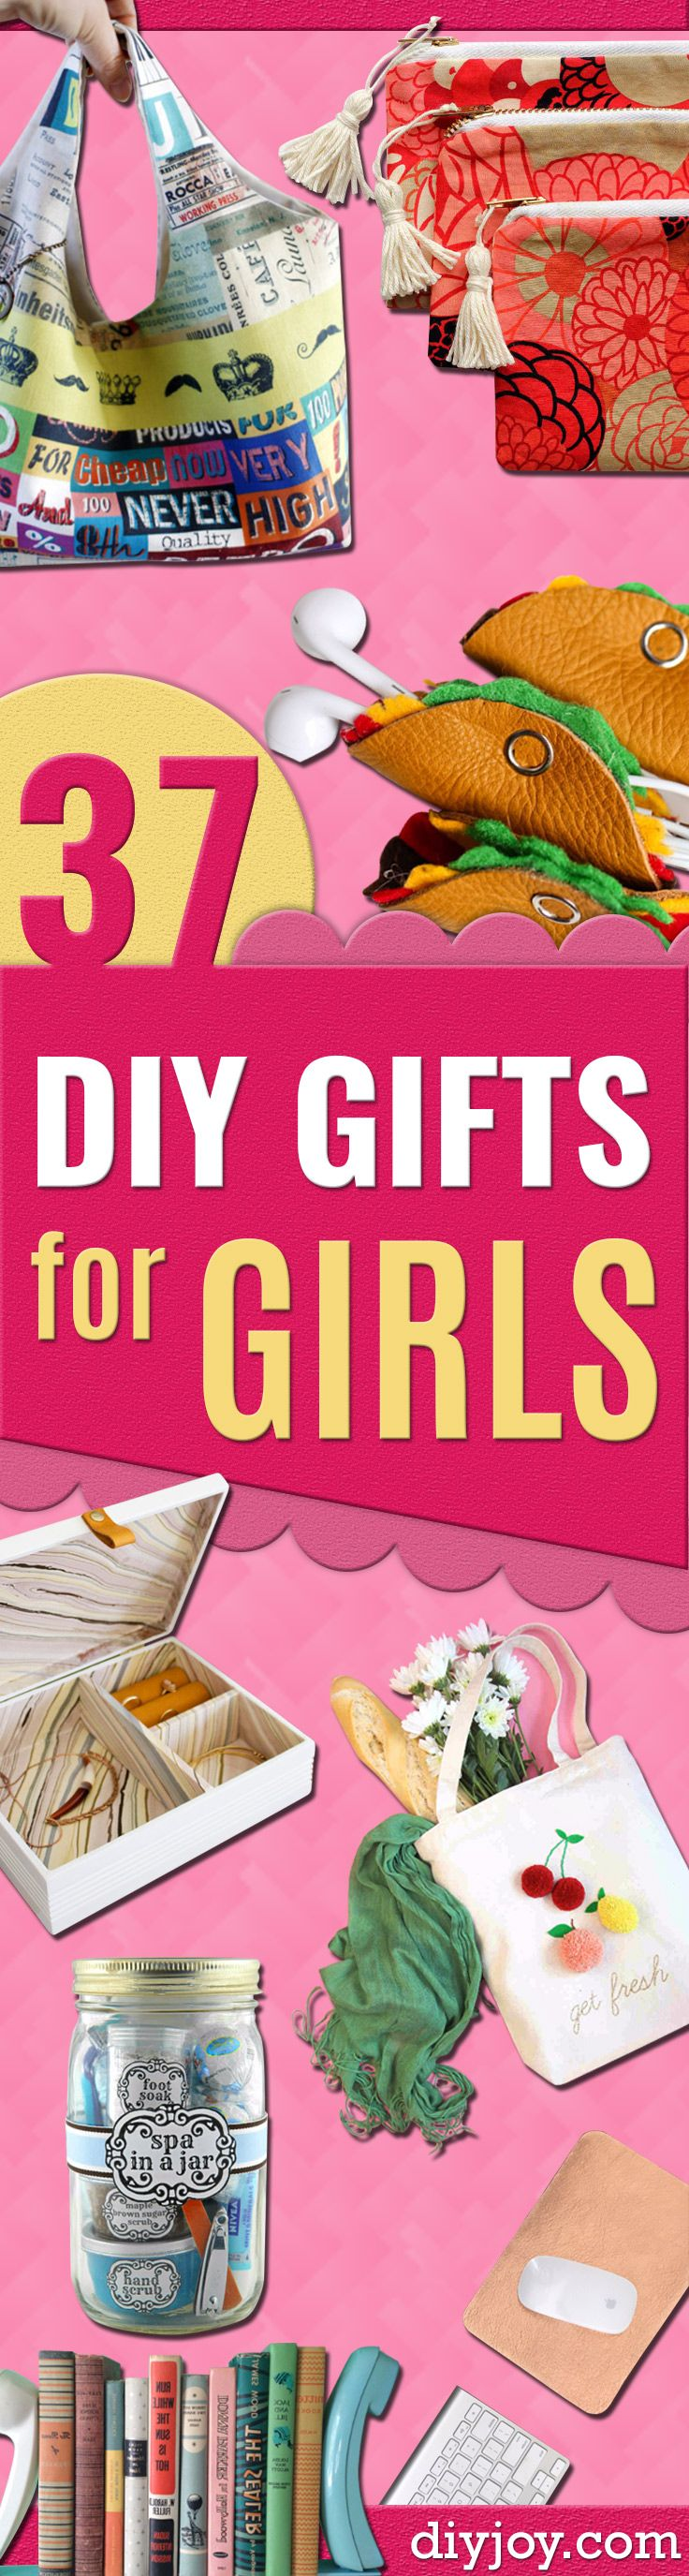 129 best diy gifts images on pinterest craft activity ideas and 37 best diy gifts for girls solutioingenieria Gallery